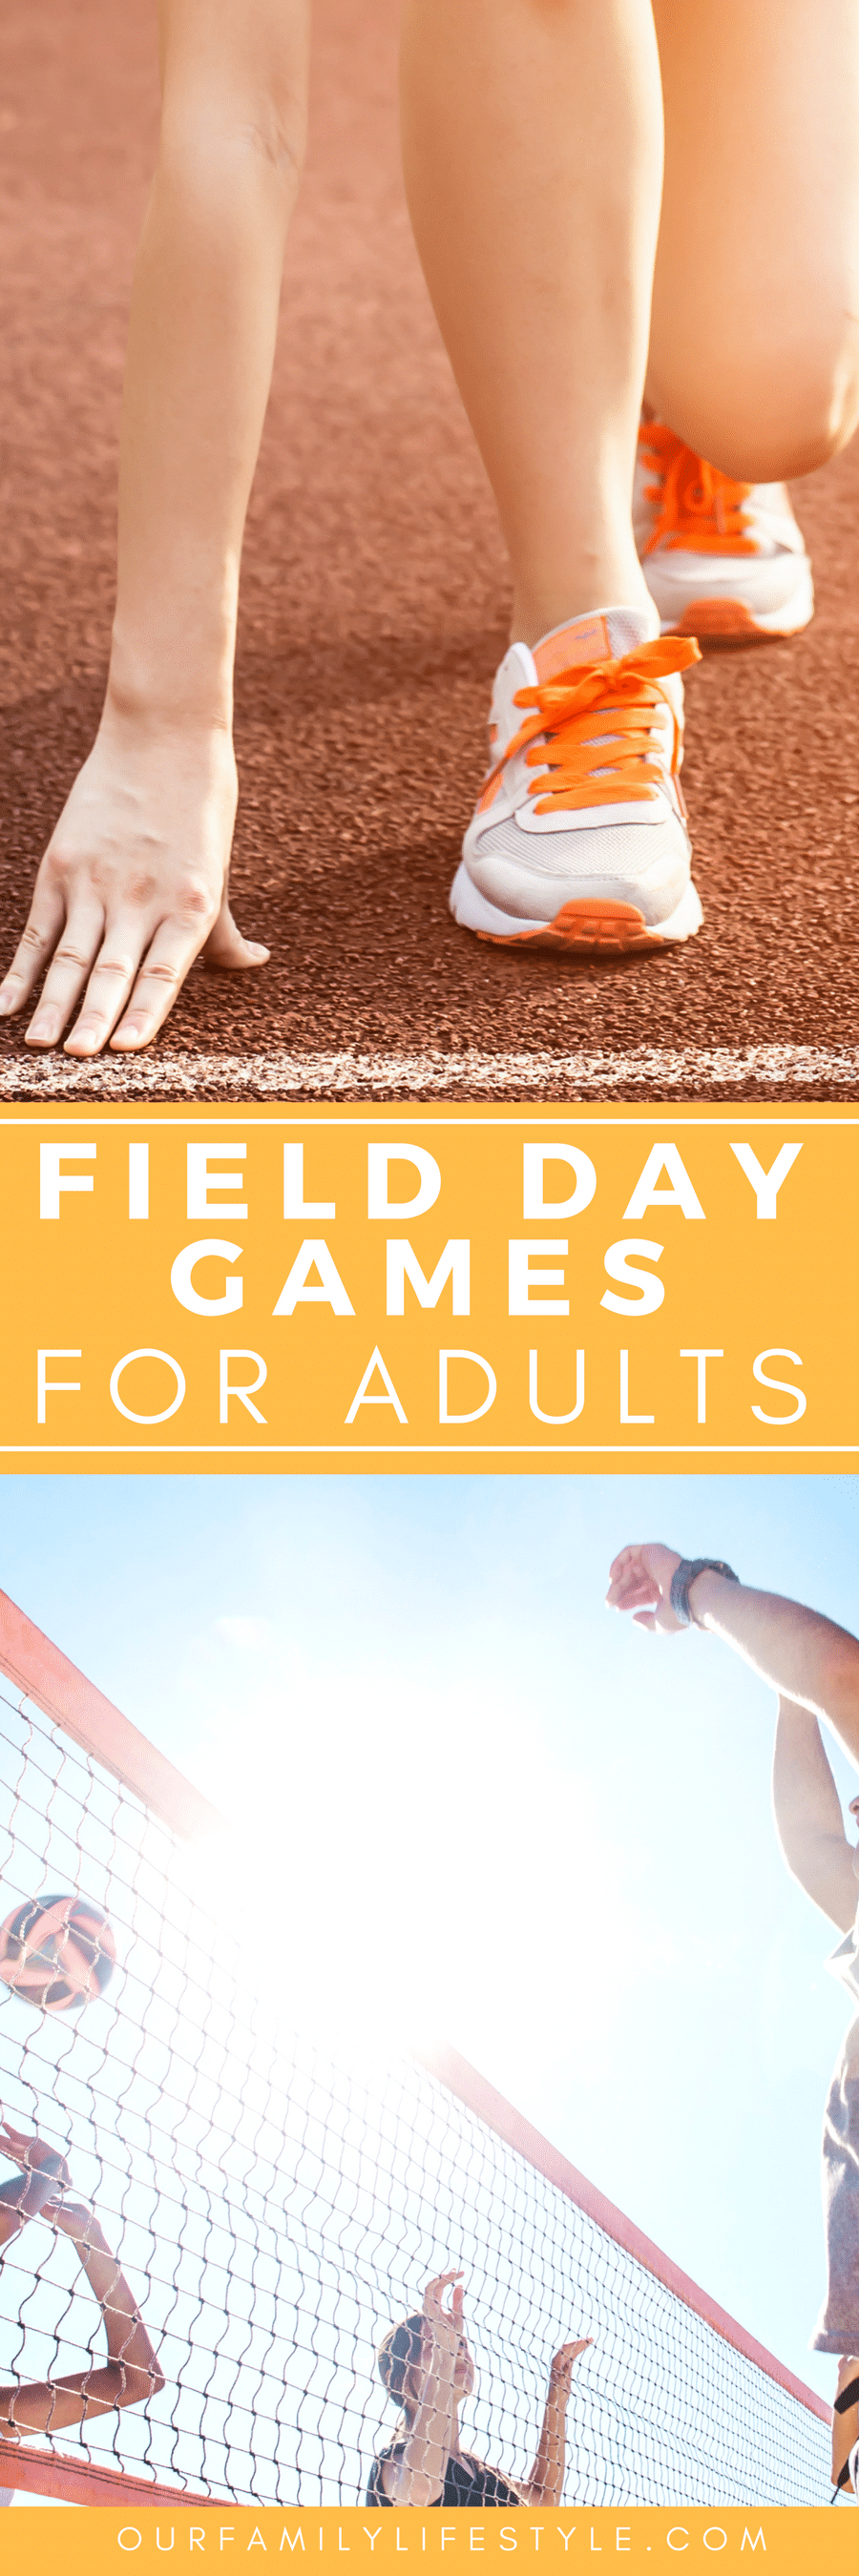 15 Field Day Games for Adults; because kids aren't the only ones who enjoy playing classic field day games and getting wet and running relays.